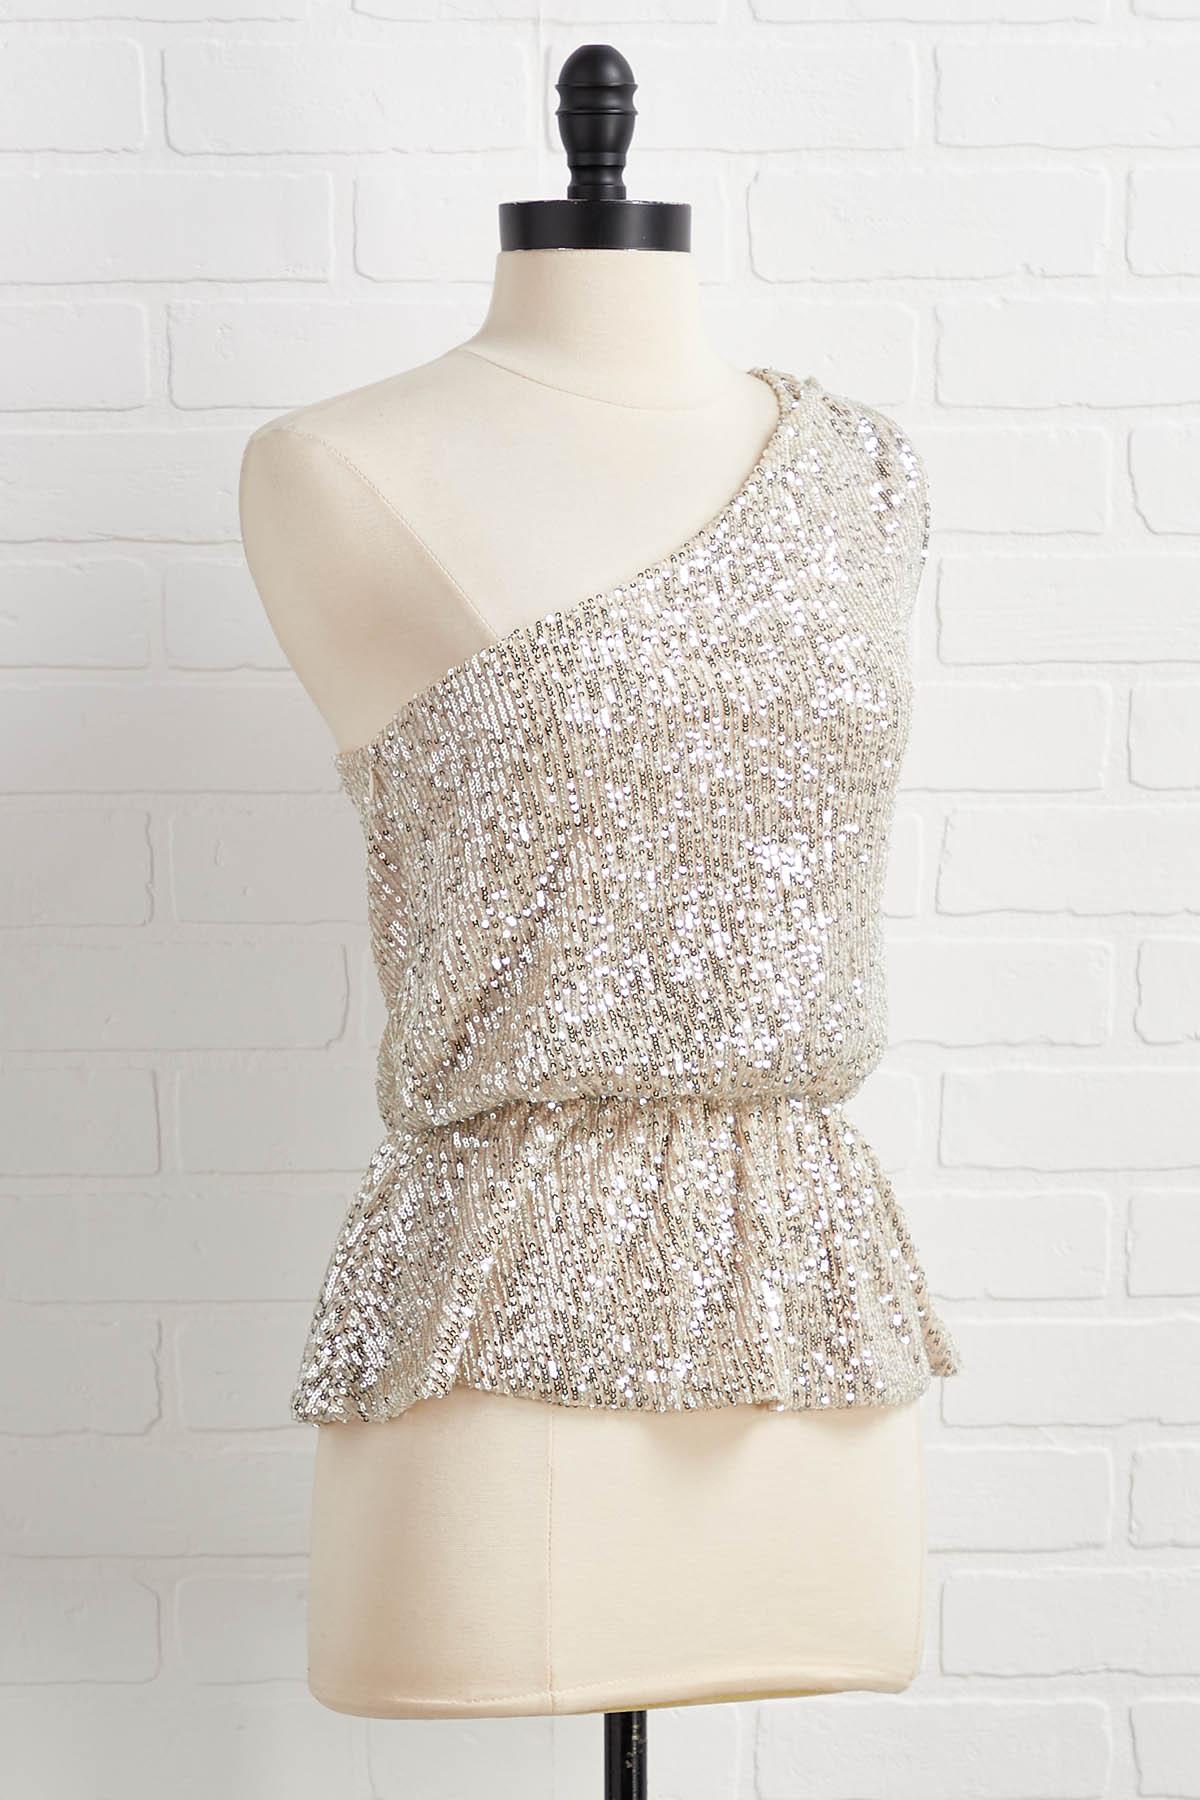 The One Shoulder For Me Top